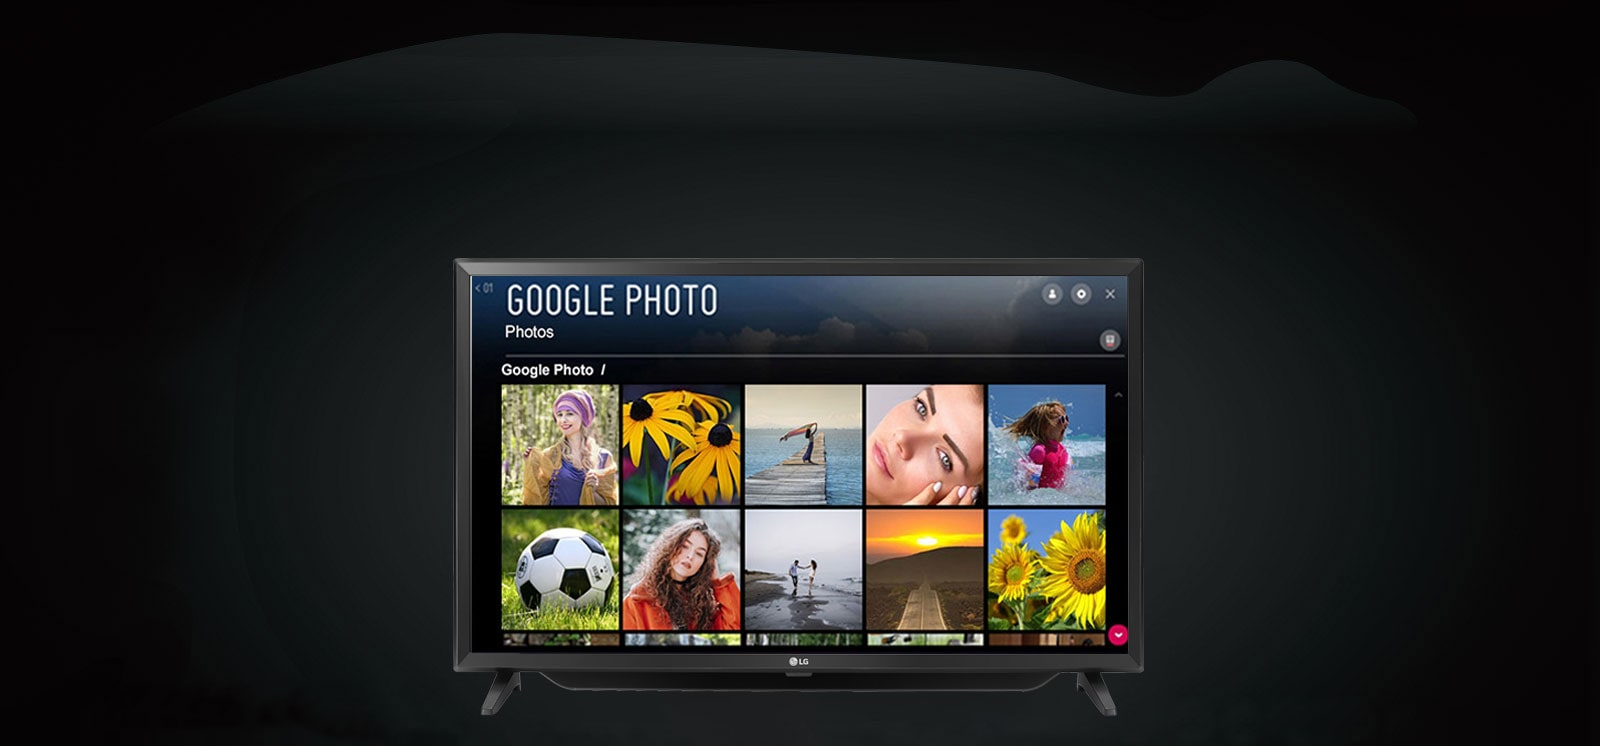 LG CLOUD PHOTO & VIDEO Smart TV